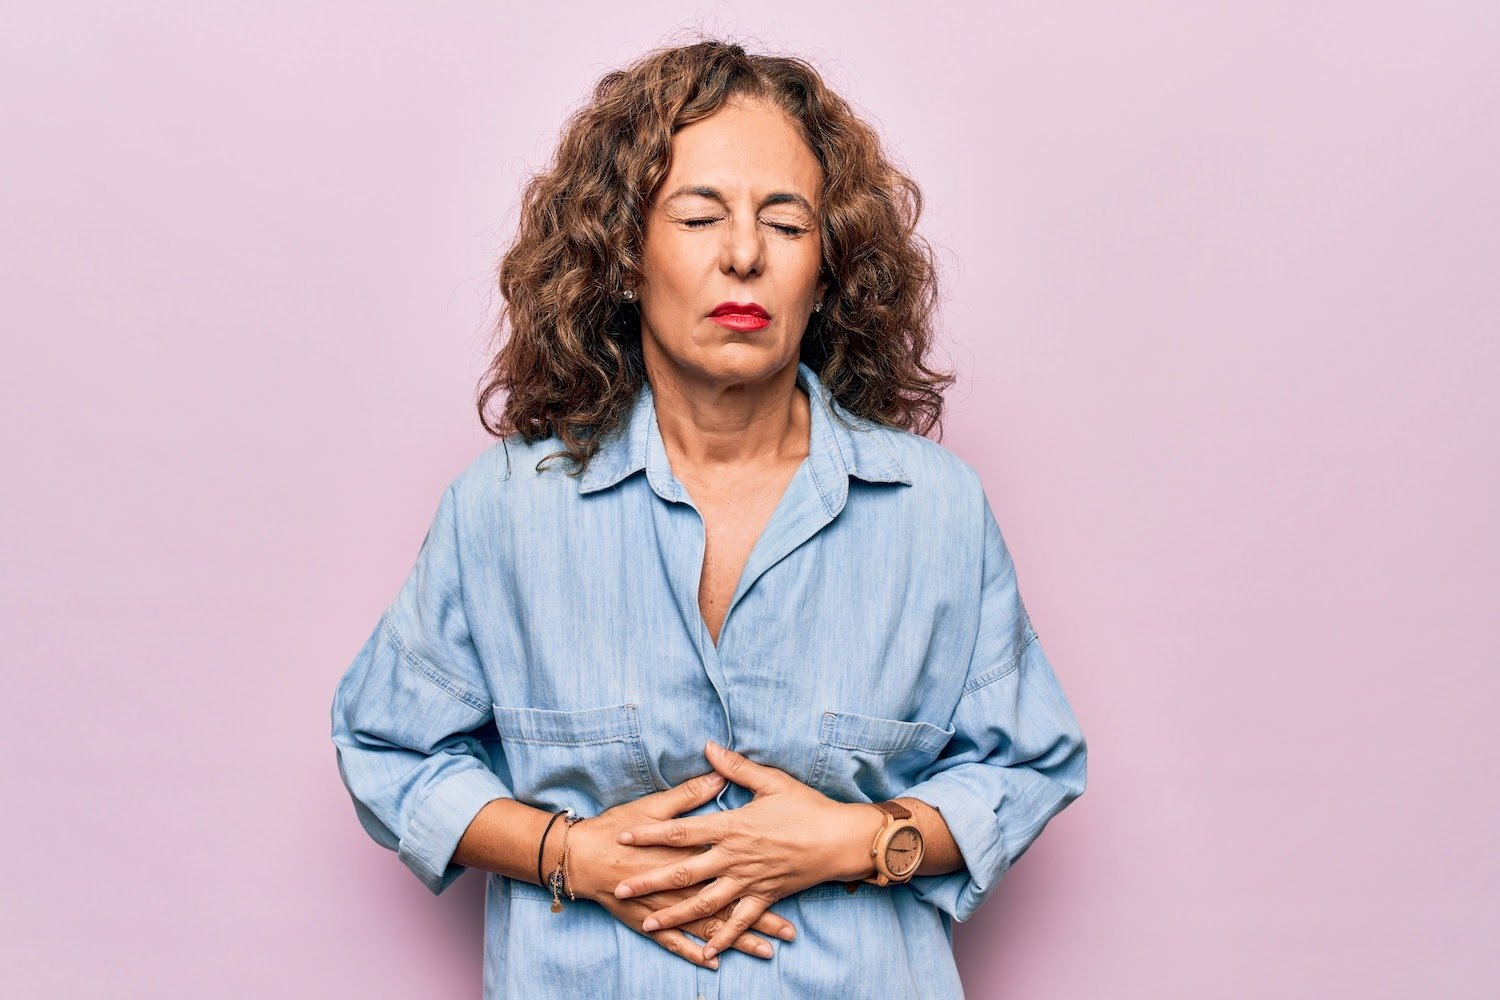 Digestive enzymes for IBS: Middle aged woman with stomach pain